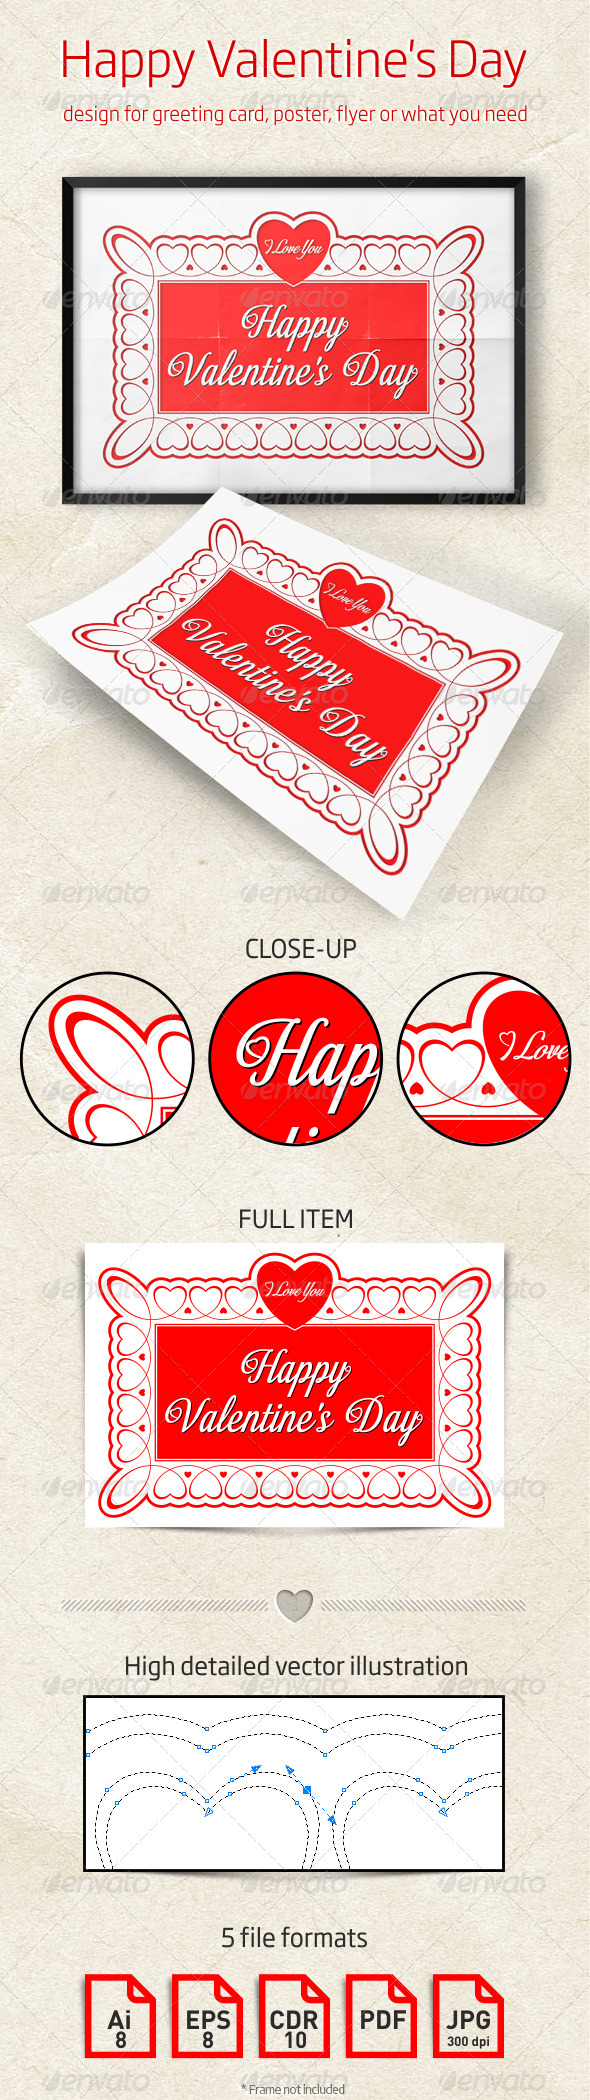 GraphicRiver Valentine's Day Design for Greeting Card Poster 3952392